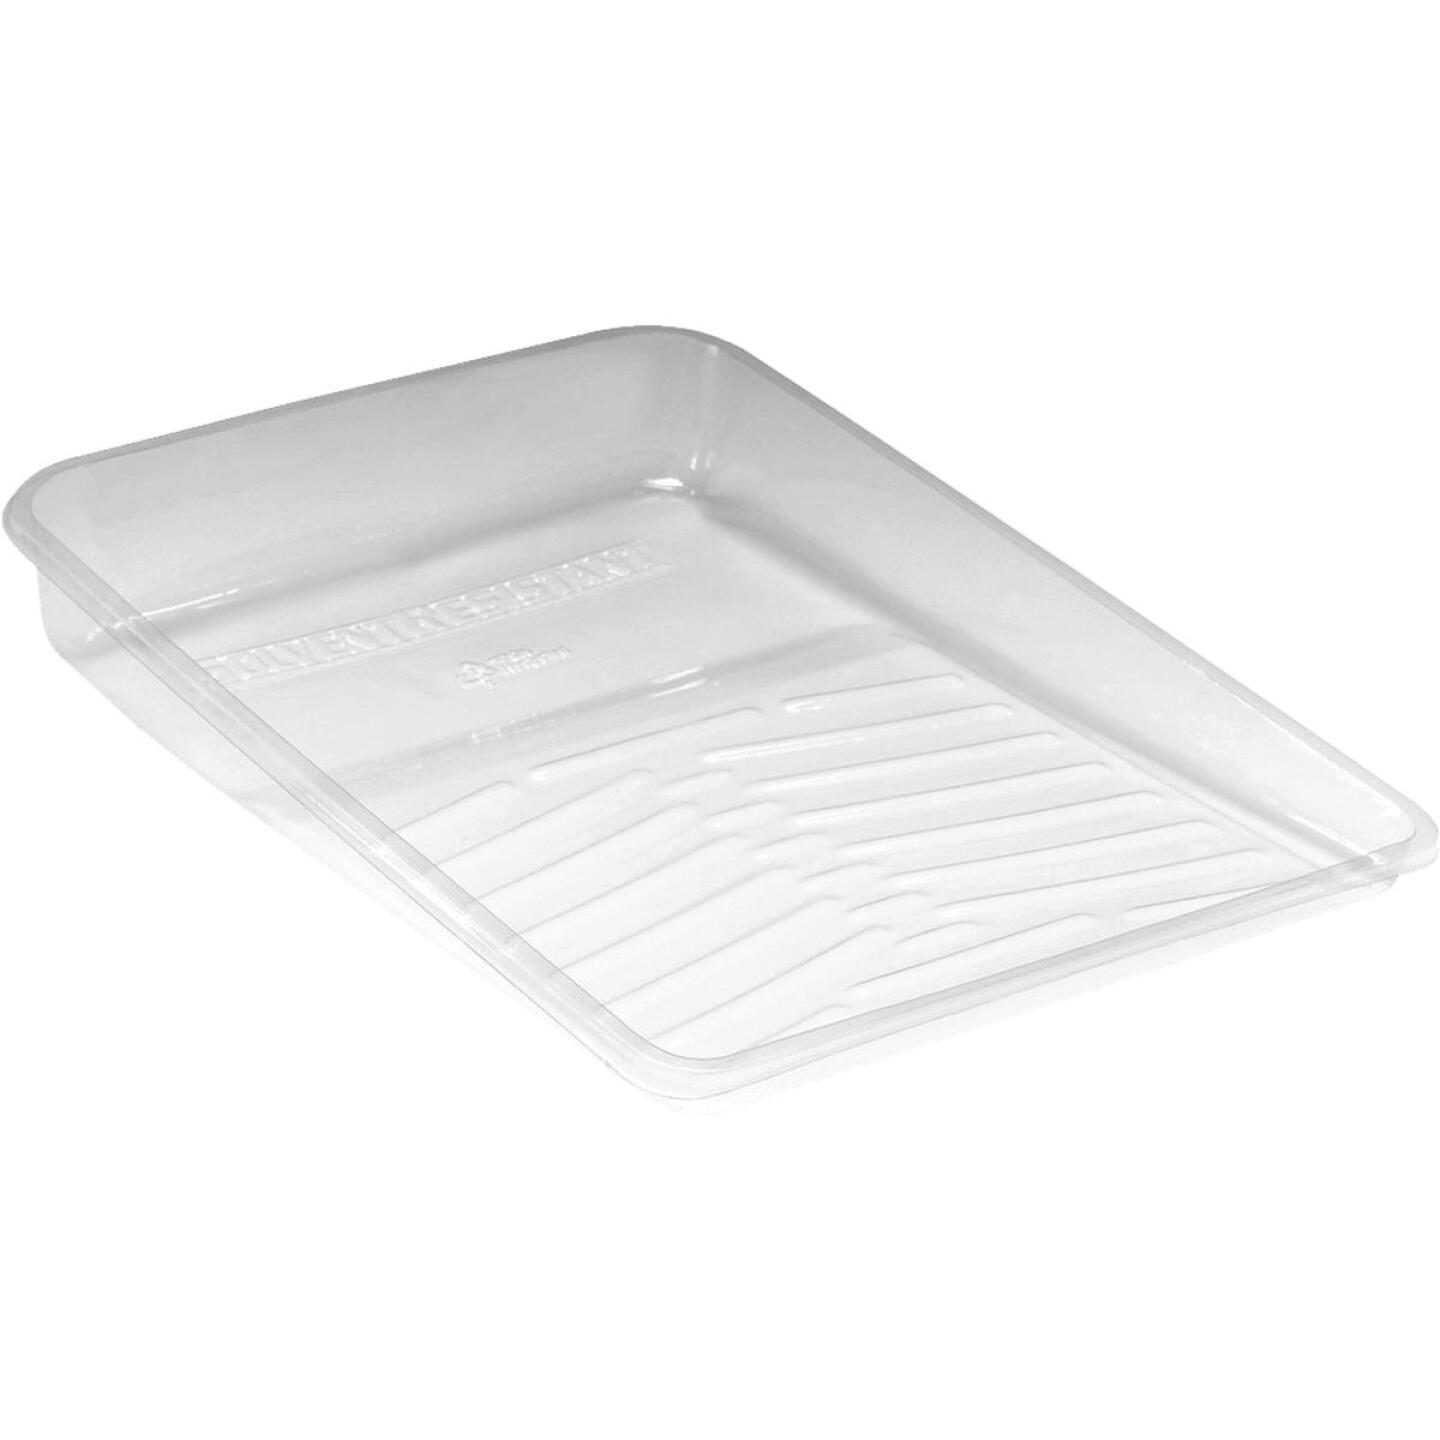 Wooster Deluxe 11 In. Paint Tray Liner Image 1